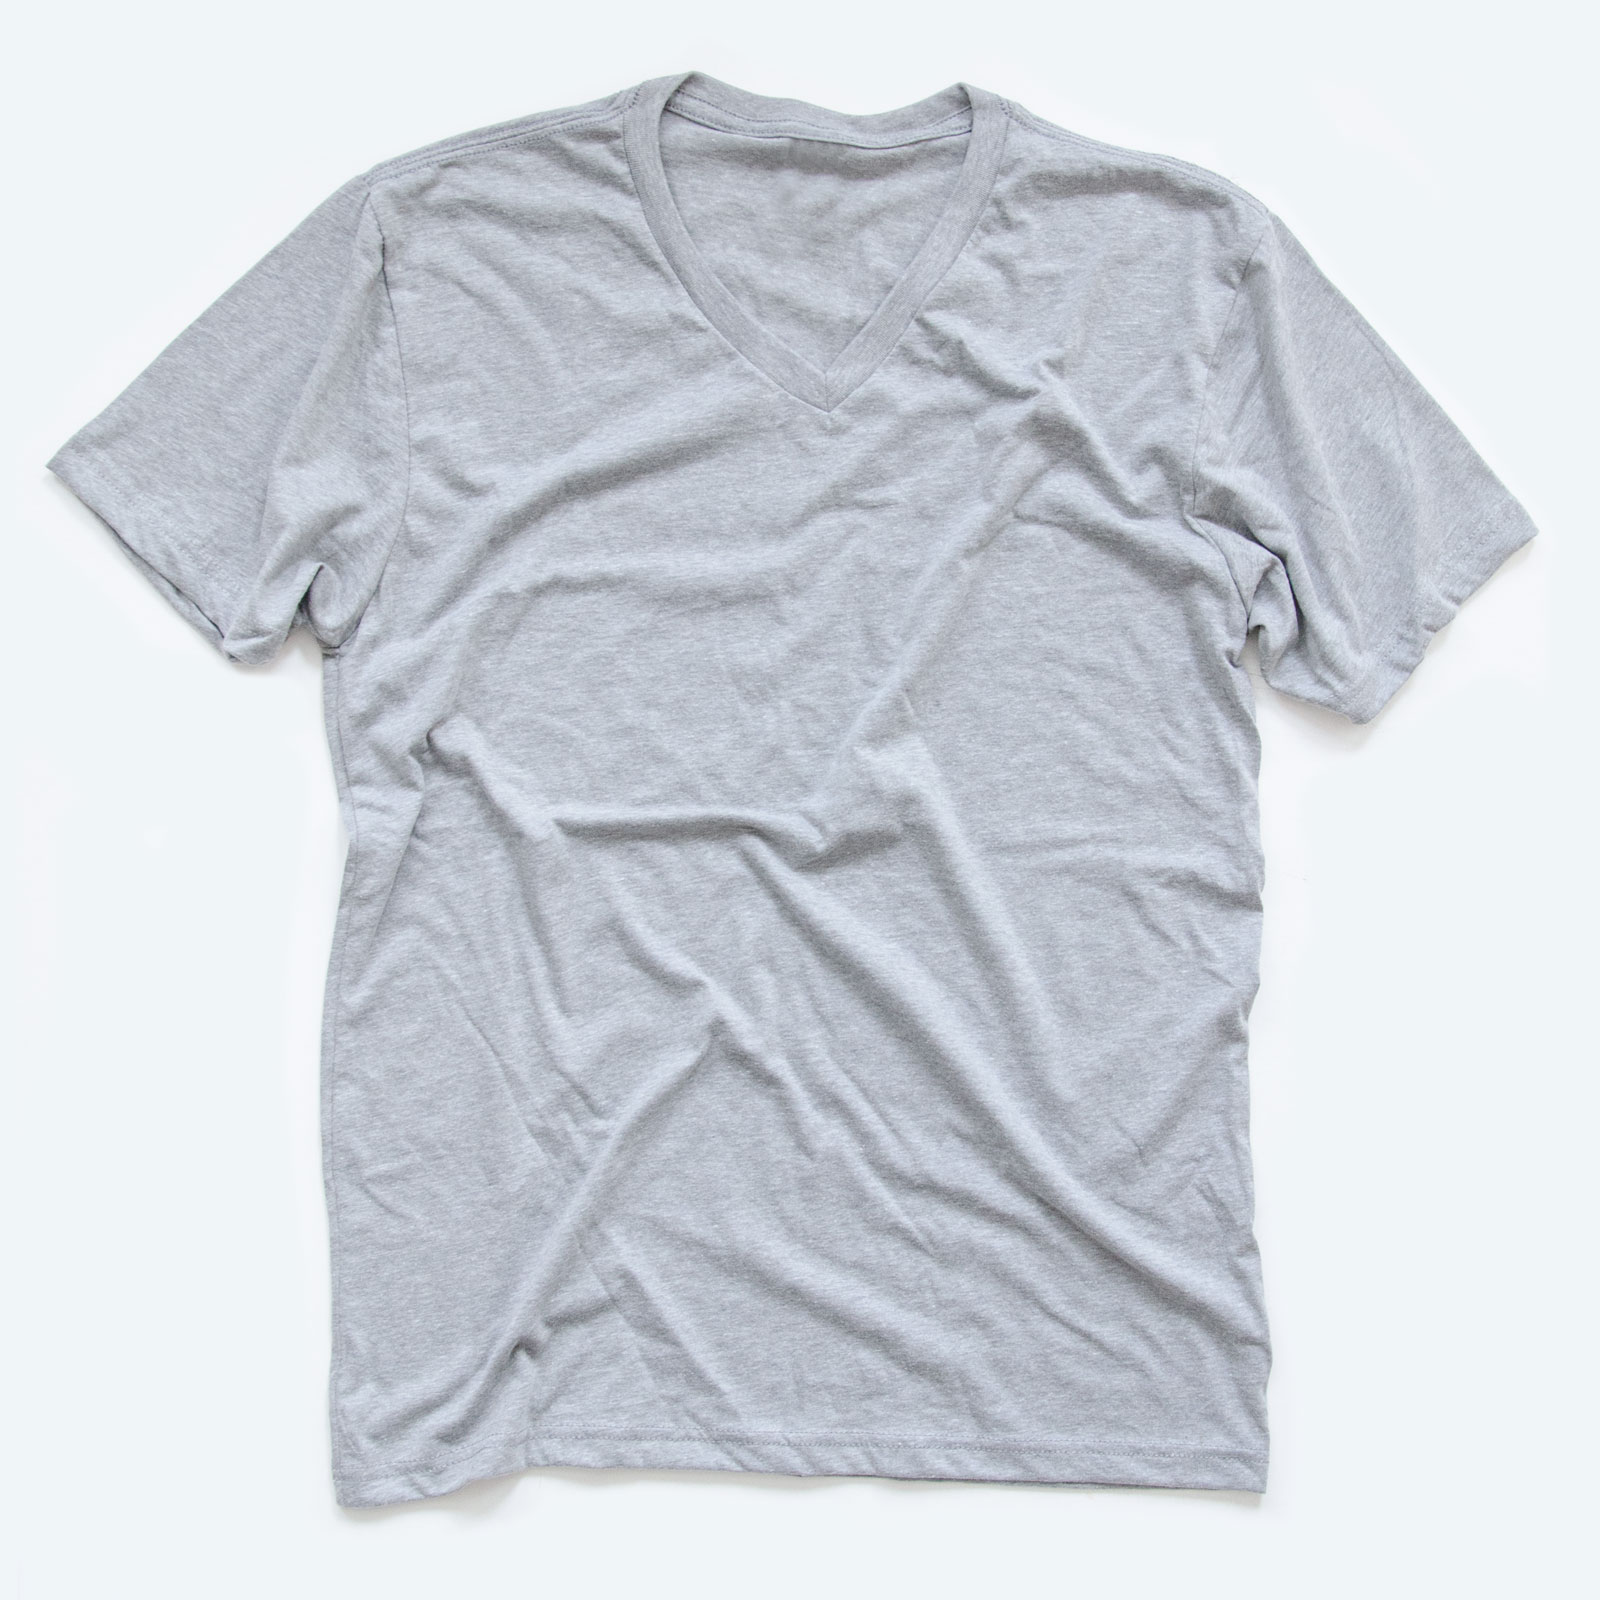 A unisex v neck t-shirt is a great style to sell online.